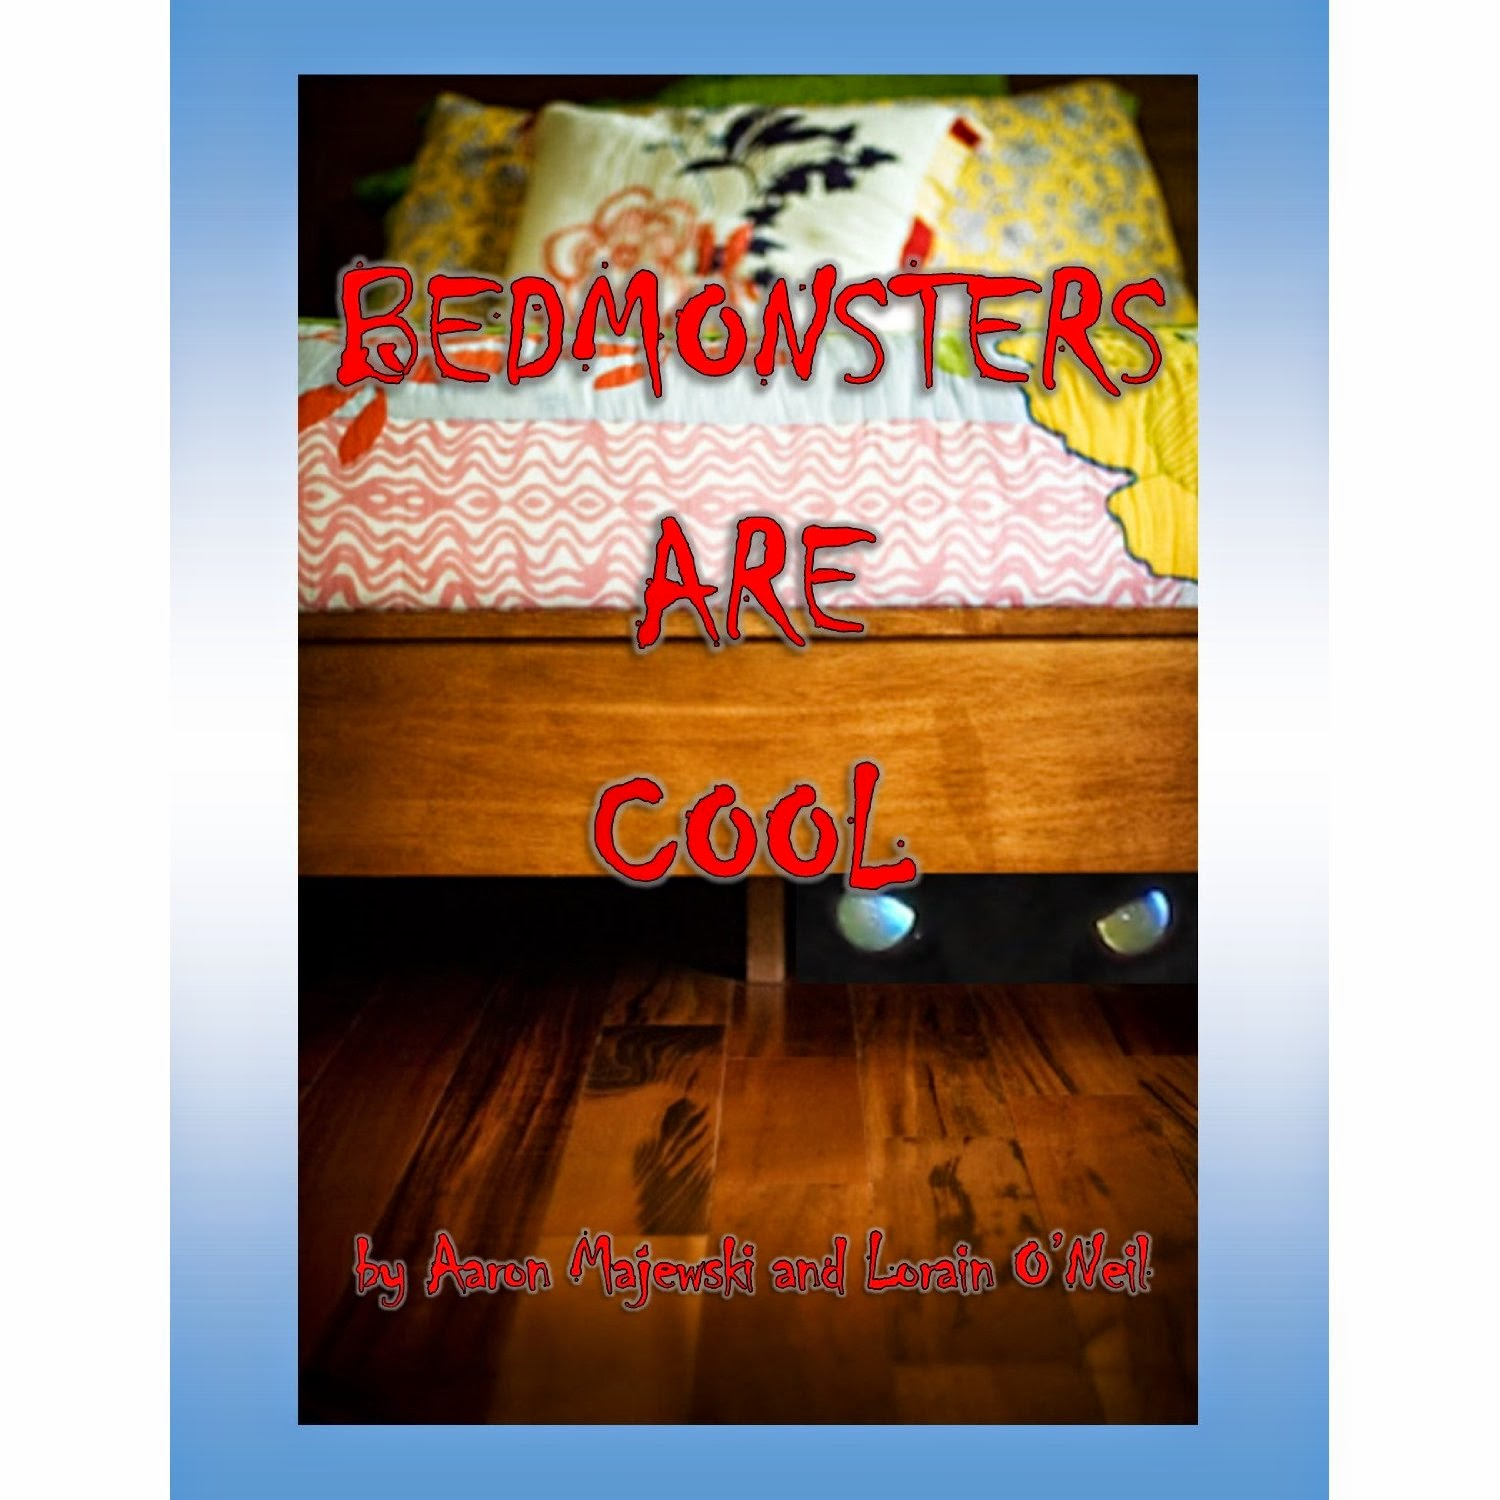 bedmonsters are cool, aaron majewski, Lorain O'Neil, bedmonster, humor, fantasy, coming of age, interview, Young Adult Fantasy, YA, young adult